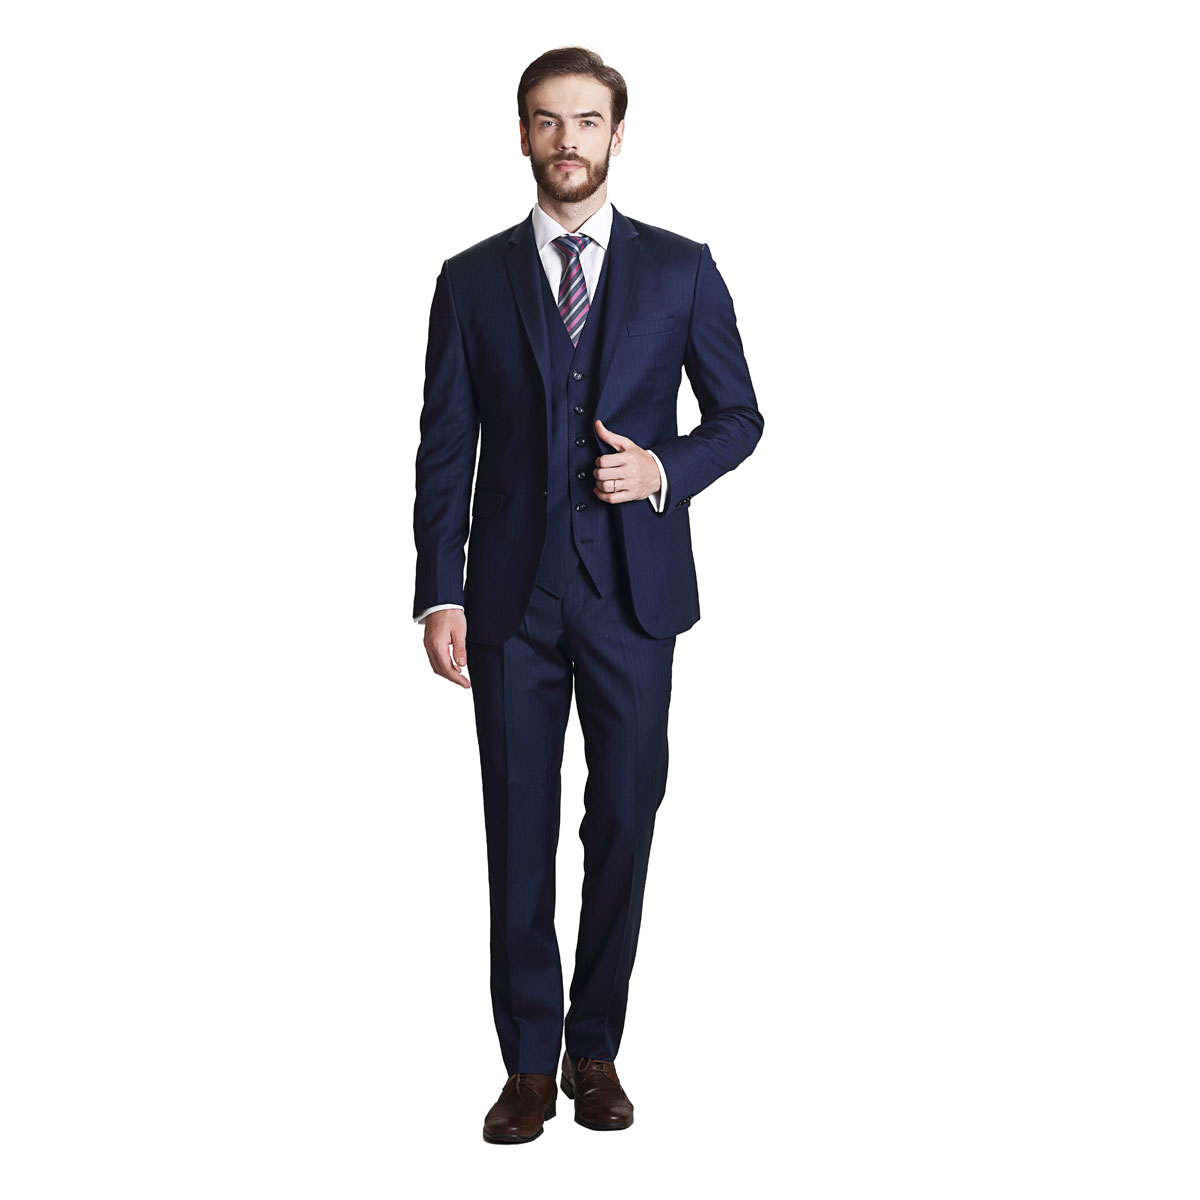 Majestic Charm Blue Suit - Best Bespoke Suits. Premium Custom